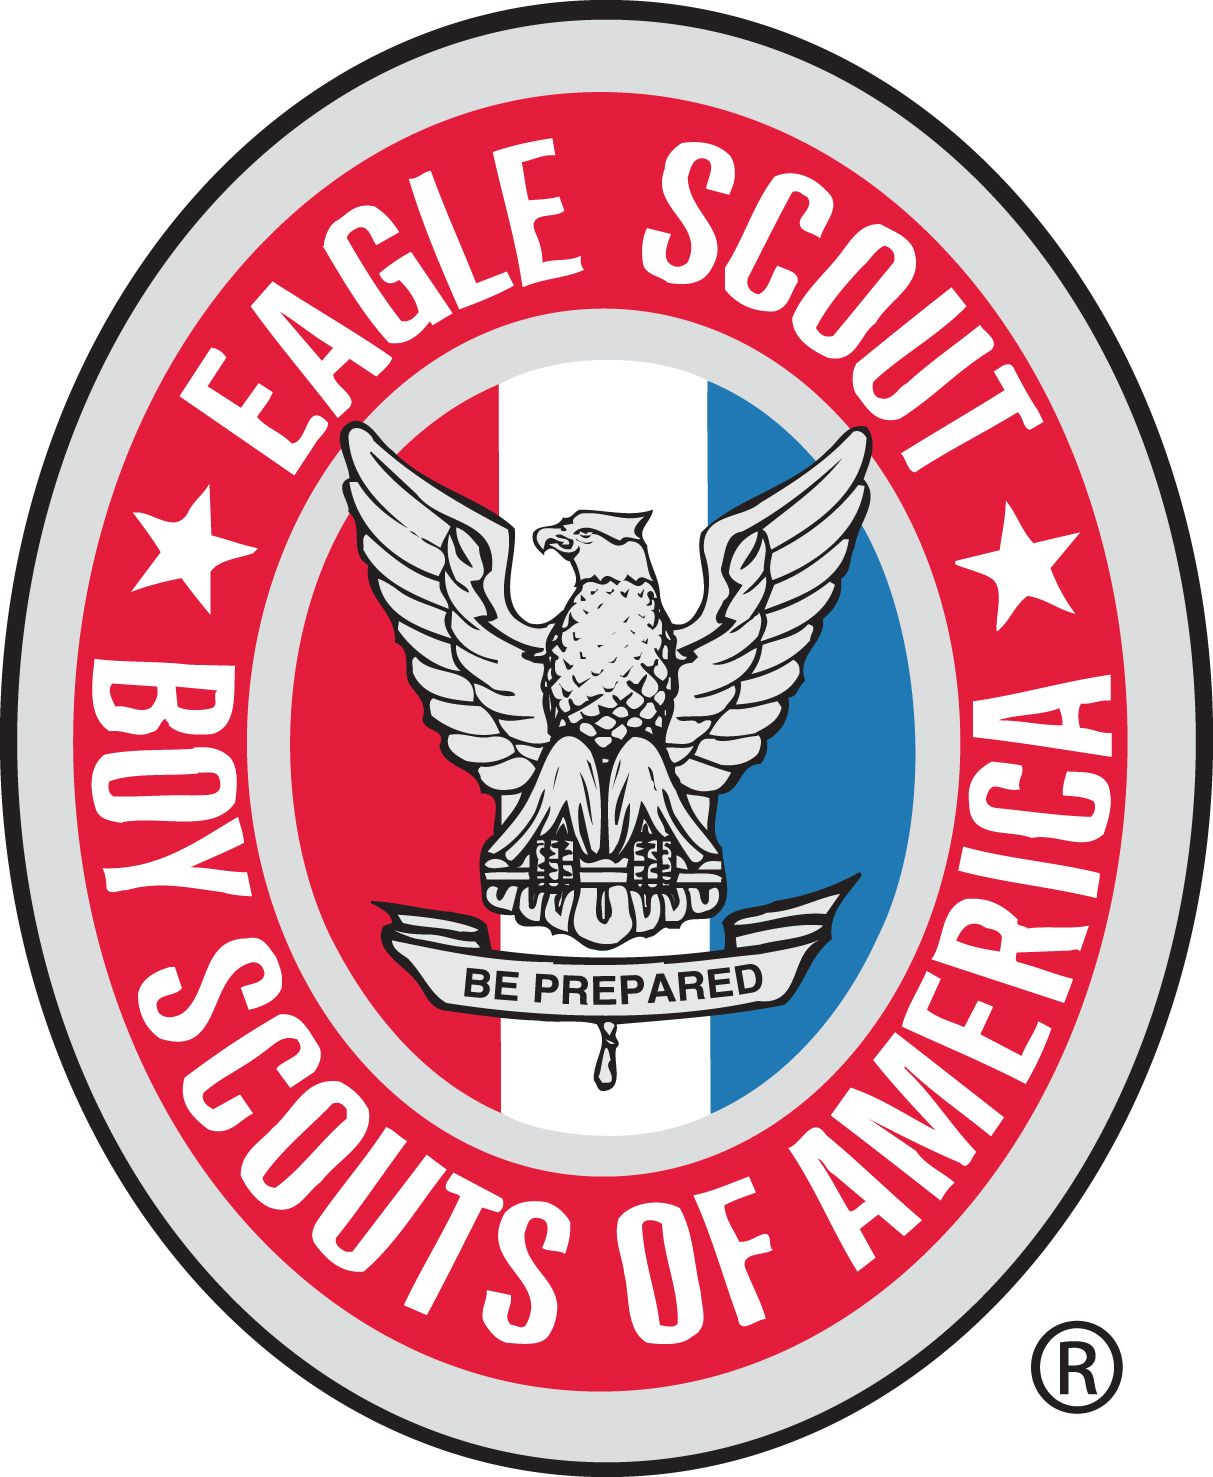 eagle scout clip art eagle scout clip art clip art images rh pinterest co uk eagle scout clip art borders eagle scout clipart free